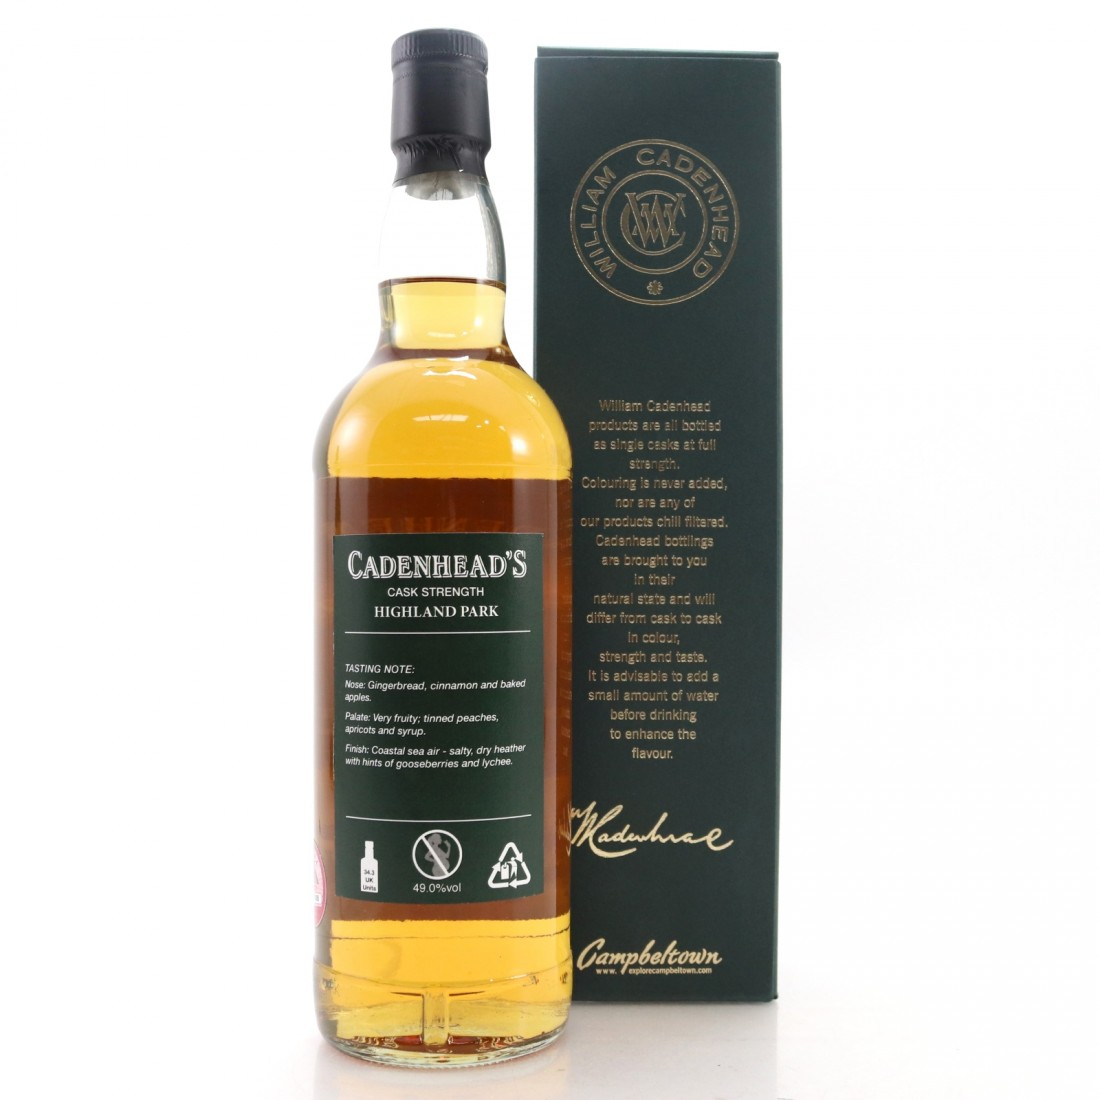 Highland Park 1988 Cadenhead's 30 Year Old